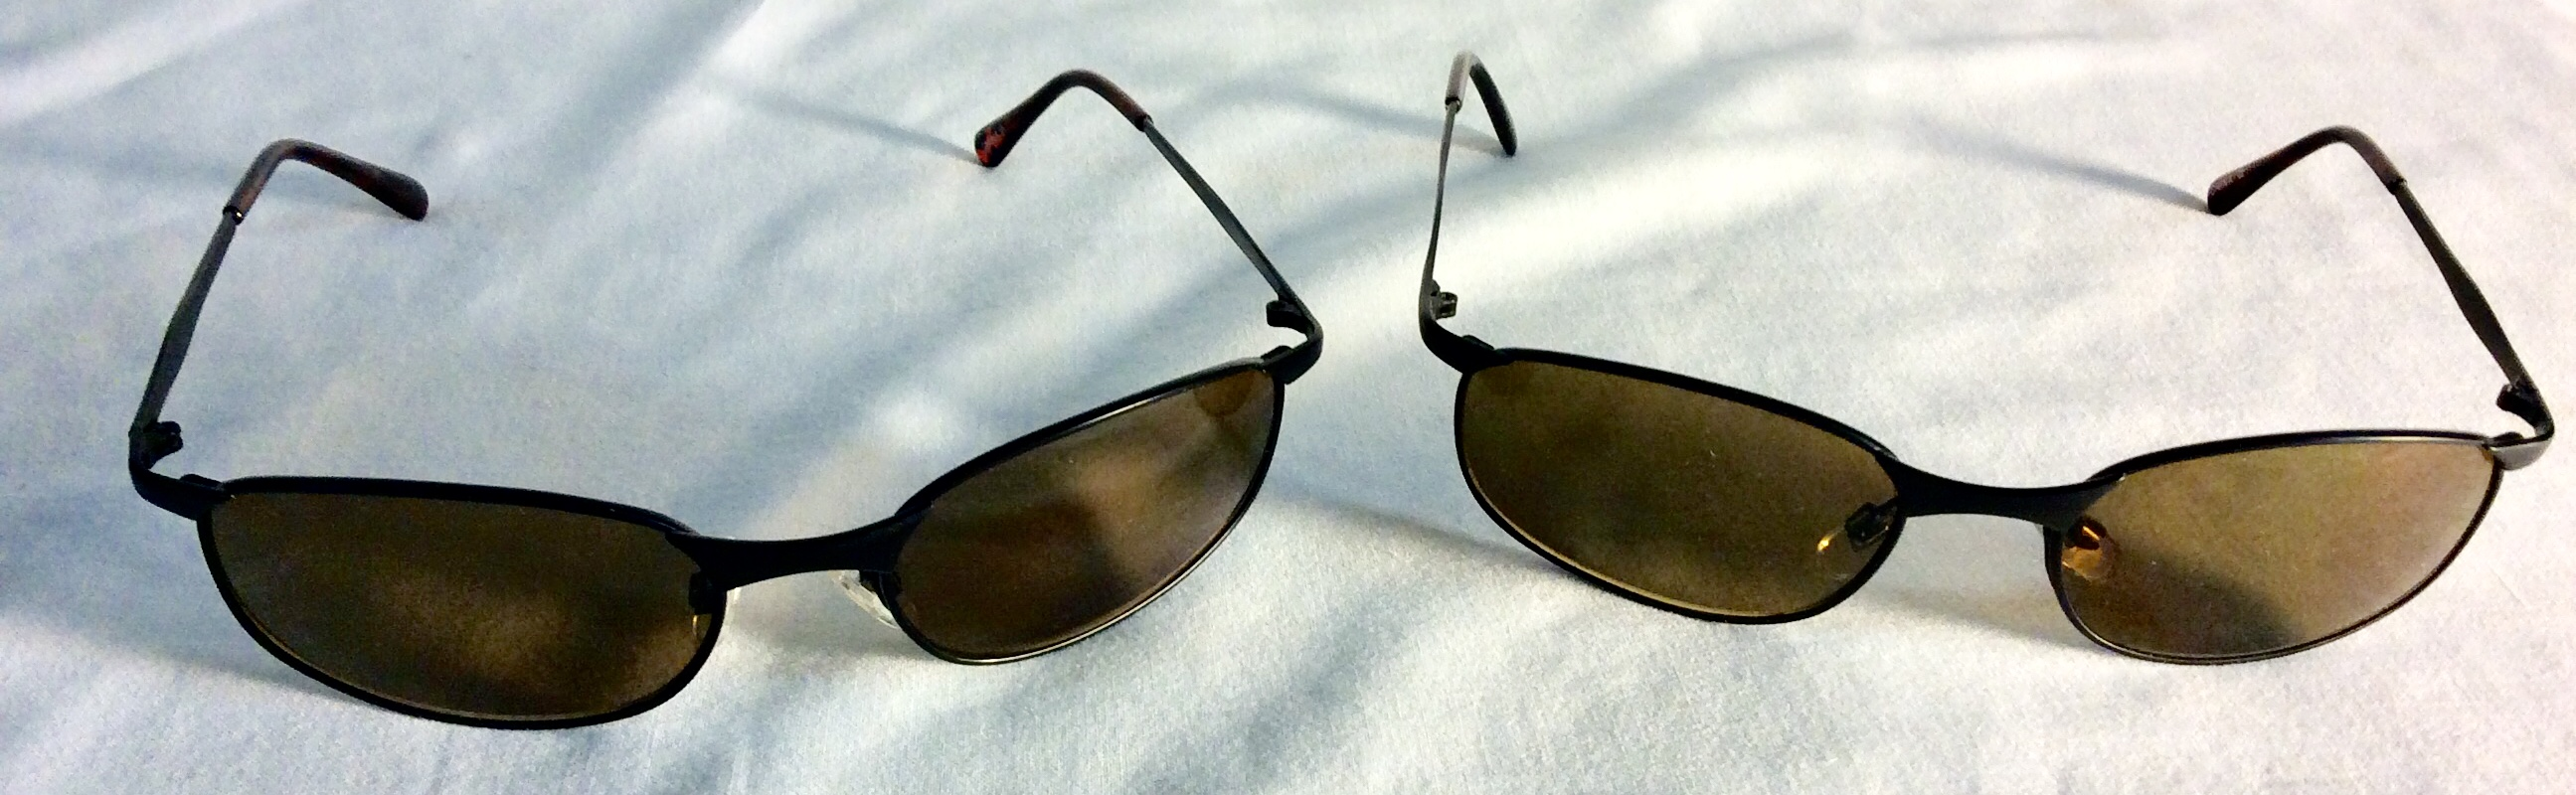 Black metal framed sunglasses